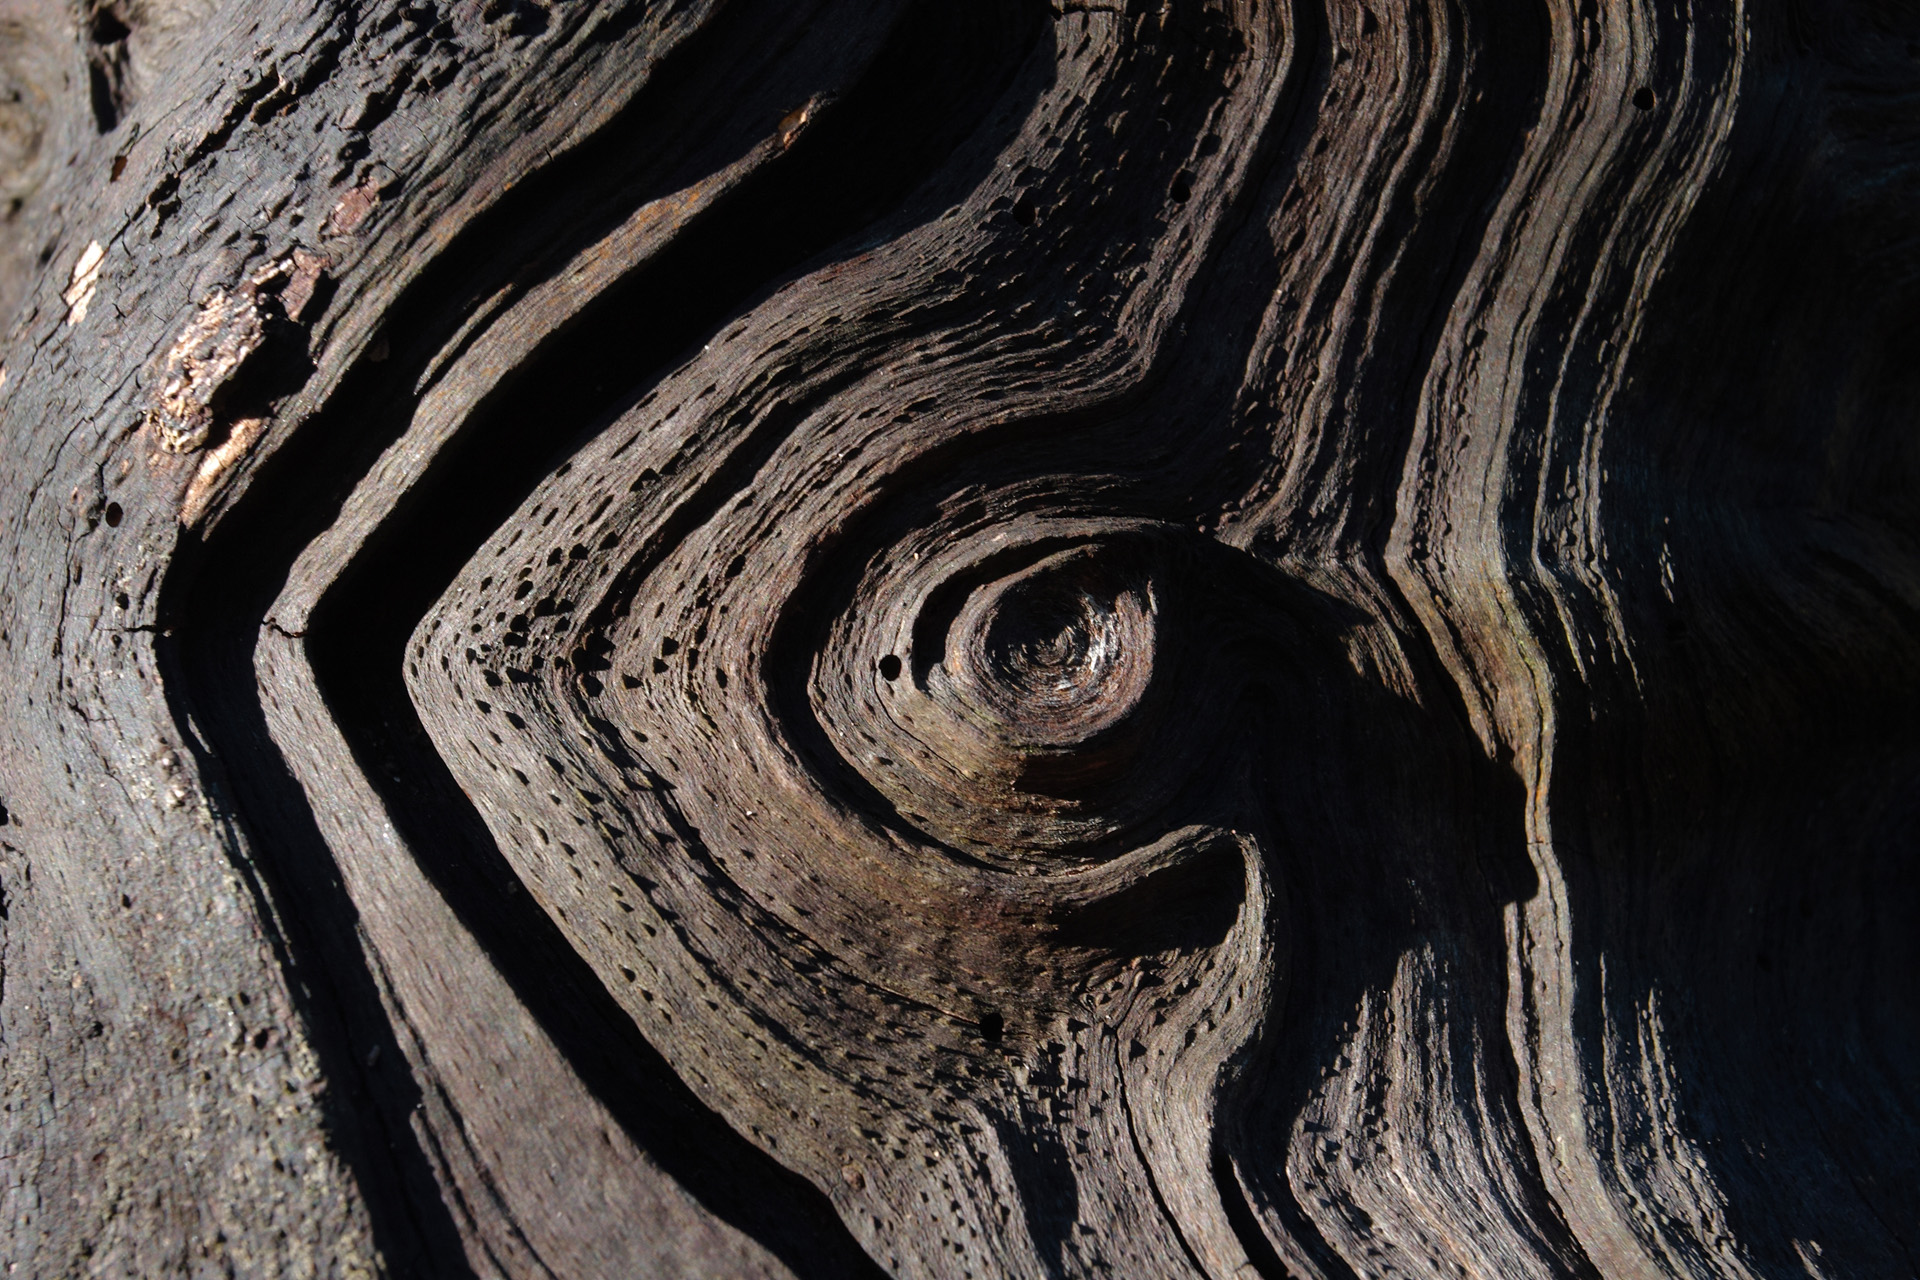 Weathered wood spiral whorl pattern